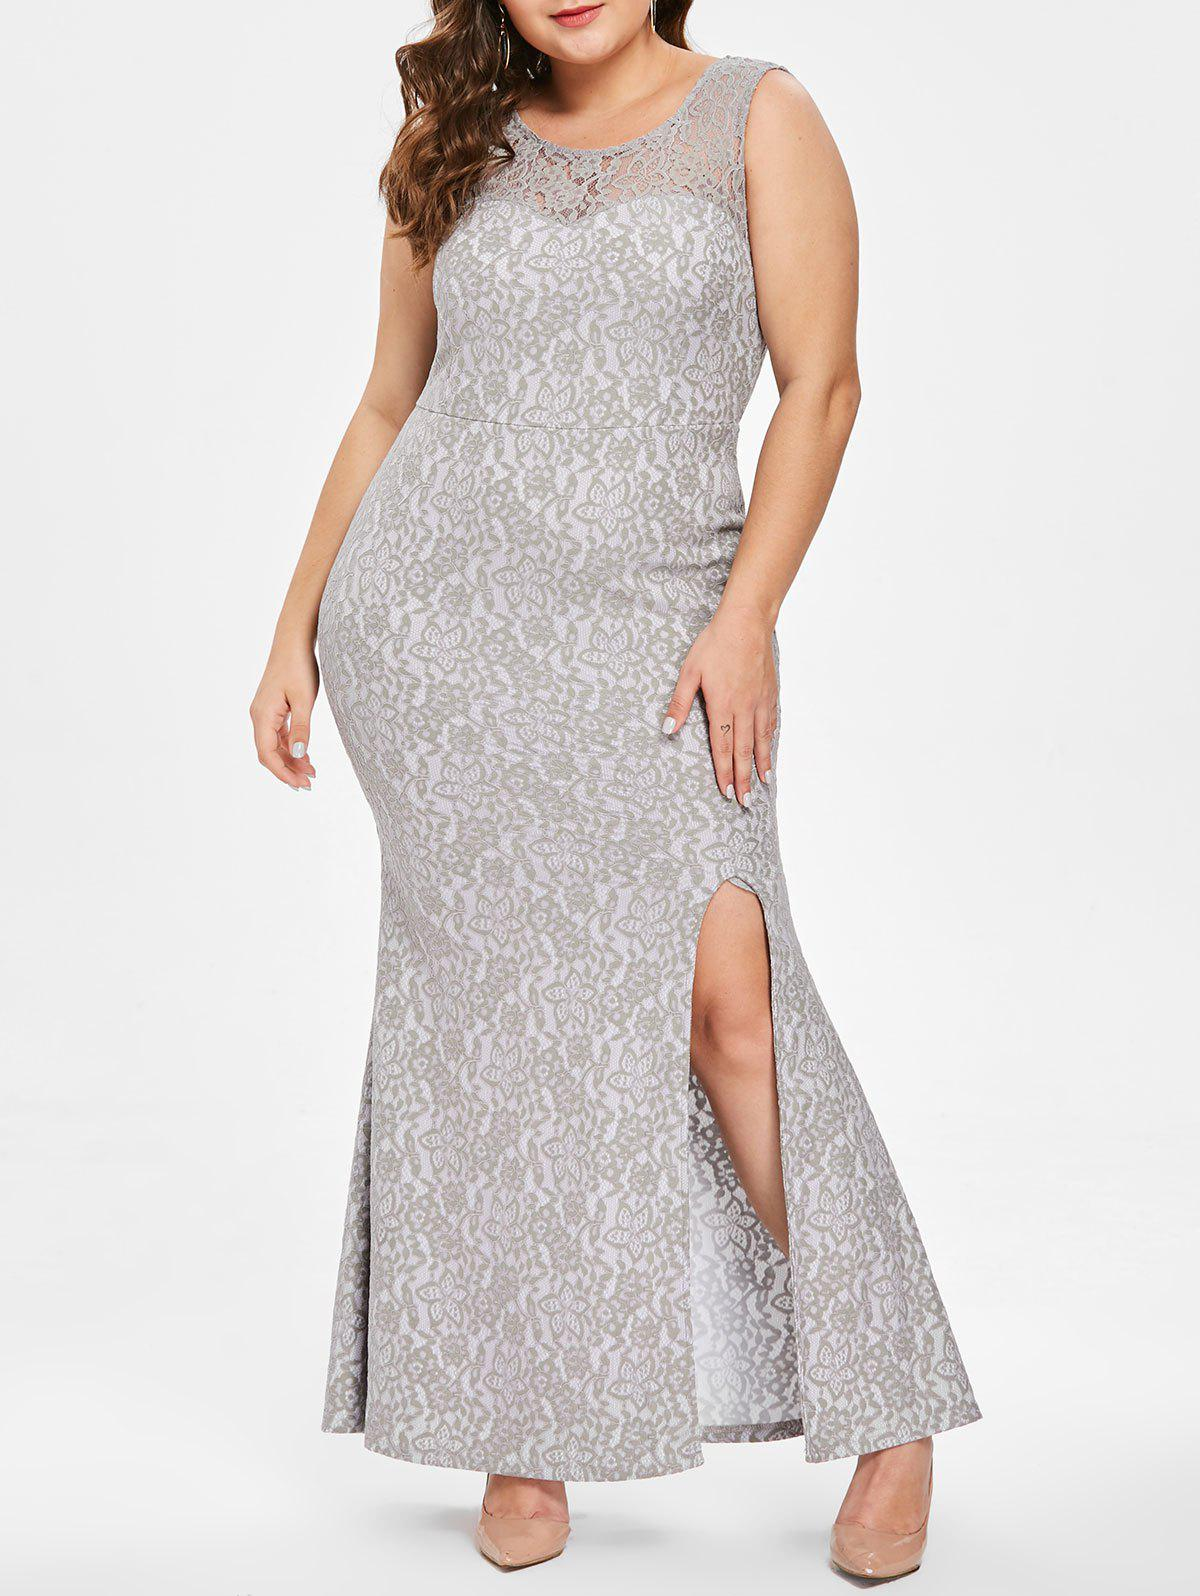 Plus Size Mother of The Slit Lace Bride Dress